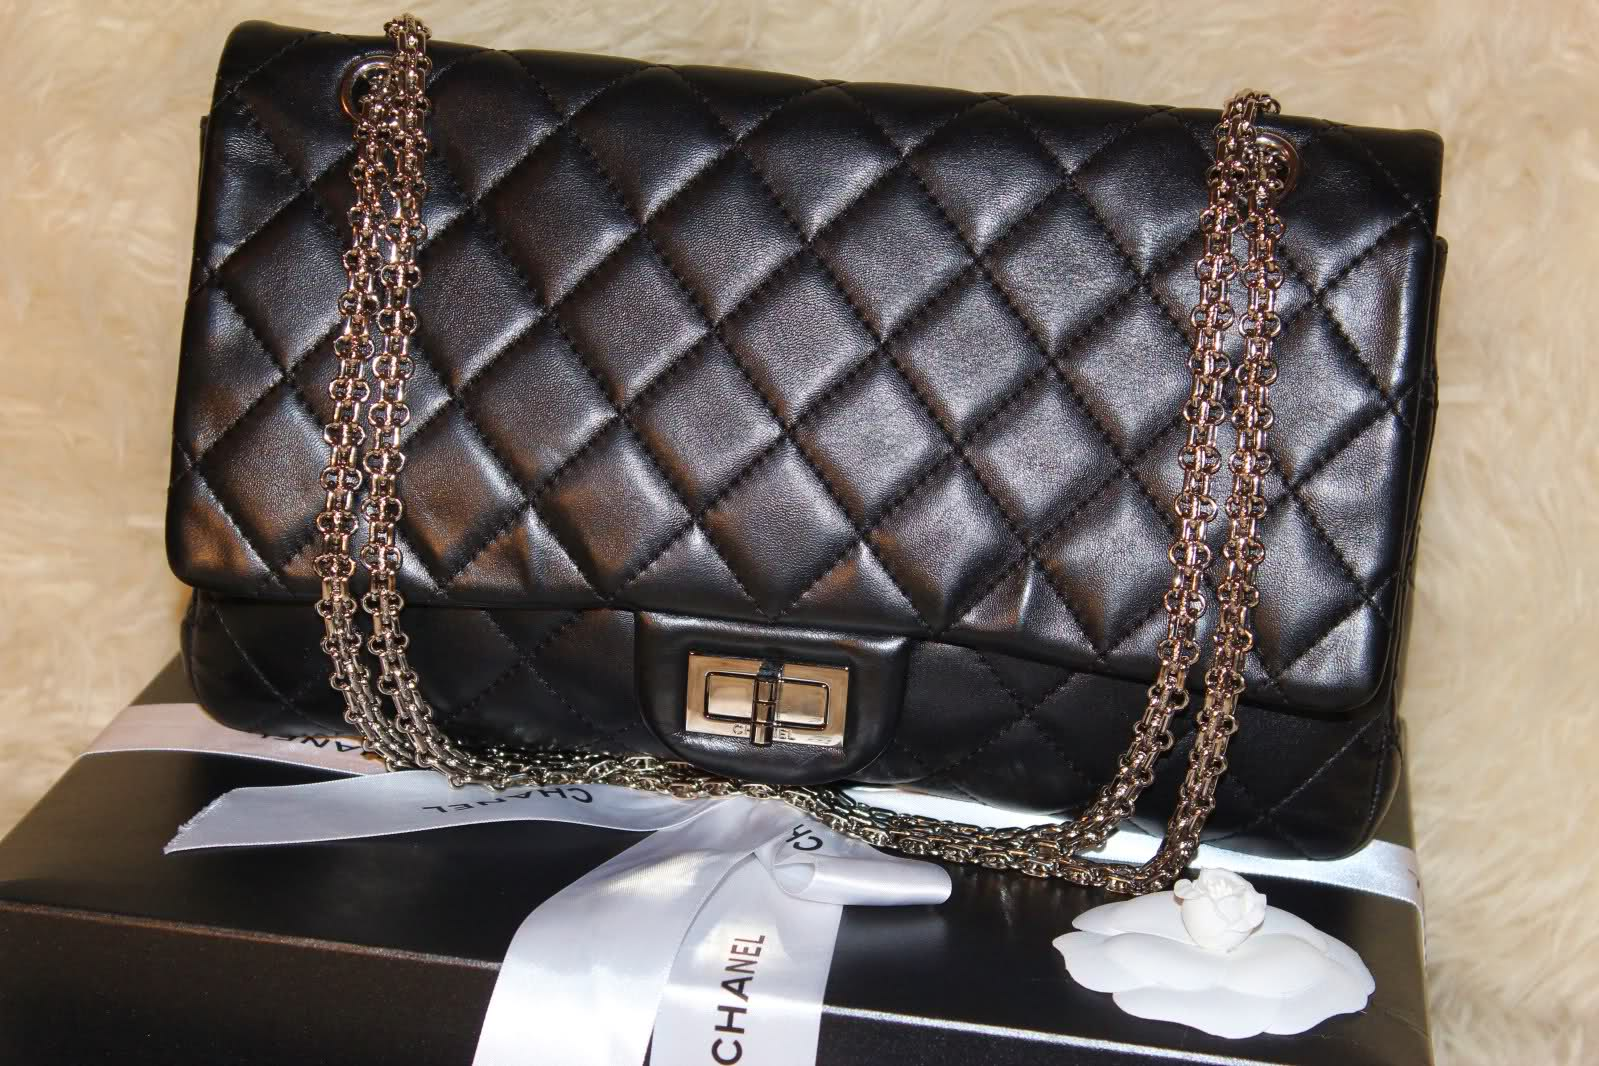 5c1f22d8b05b09 Being good addicts from safereplica. netting retailer retail outlet, I just  deal with her all latest forceful. Typically the Chanel replica purses  latest ...